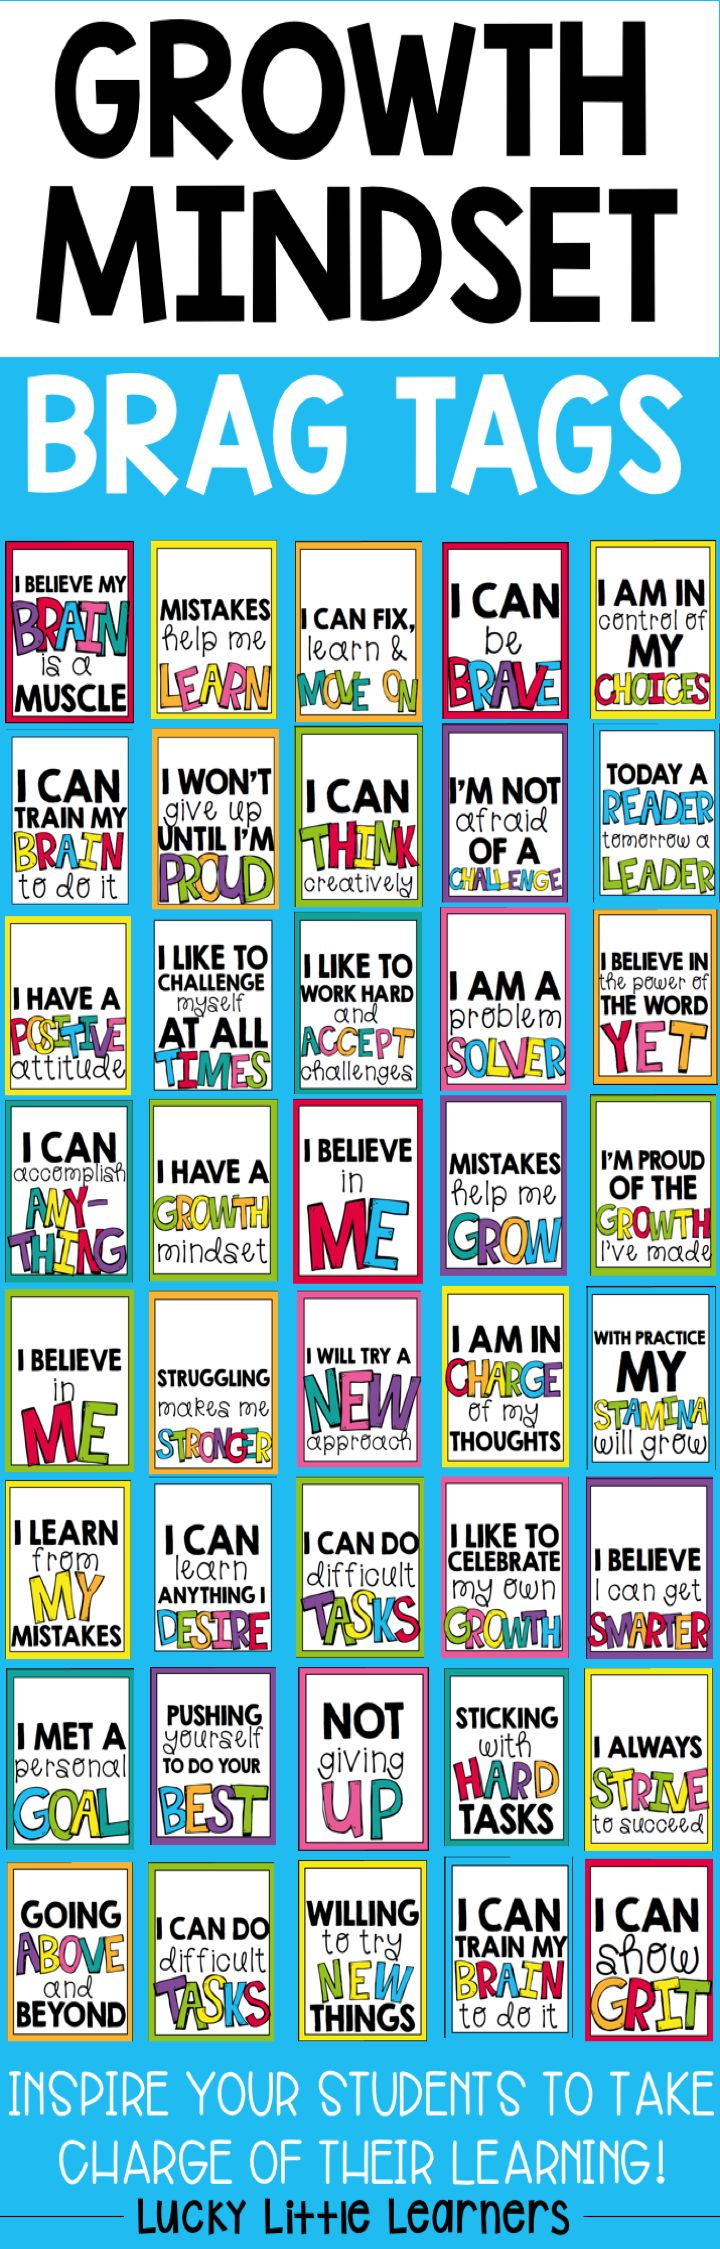 14 best PBIS/Management images on Pinterest | Gym, School and ...